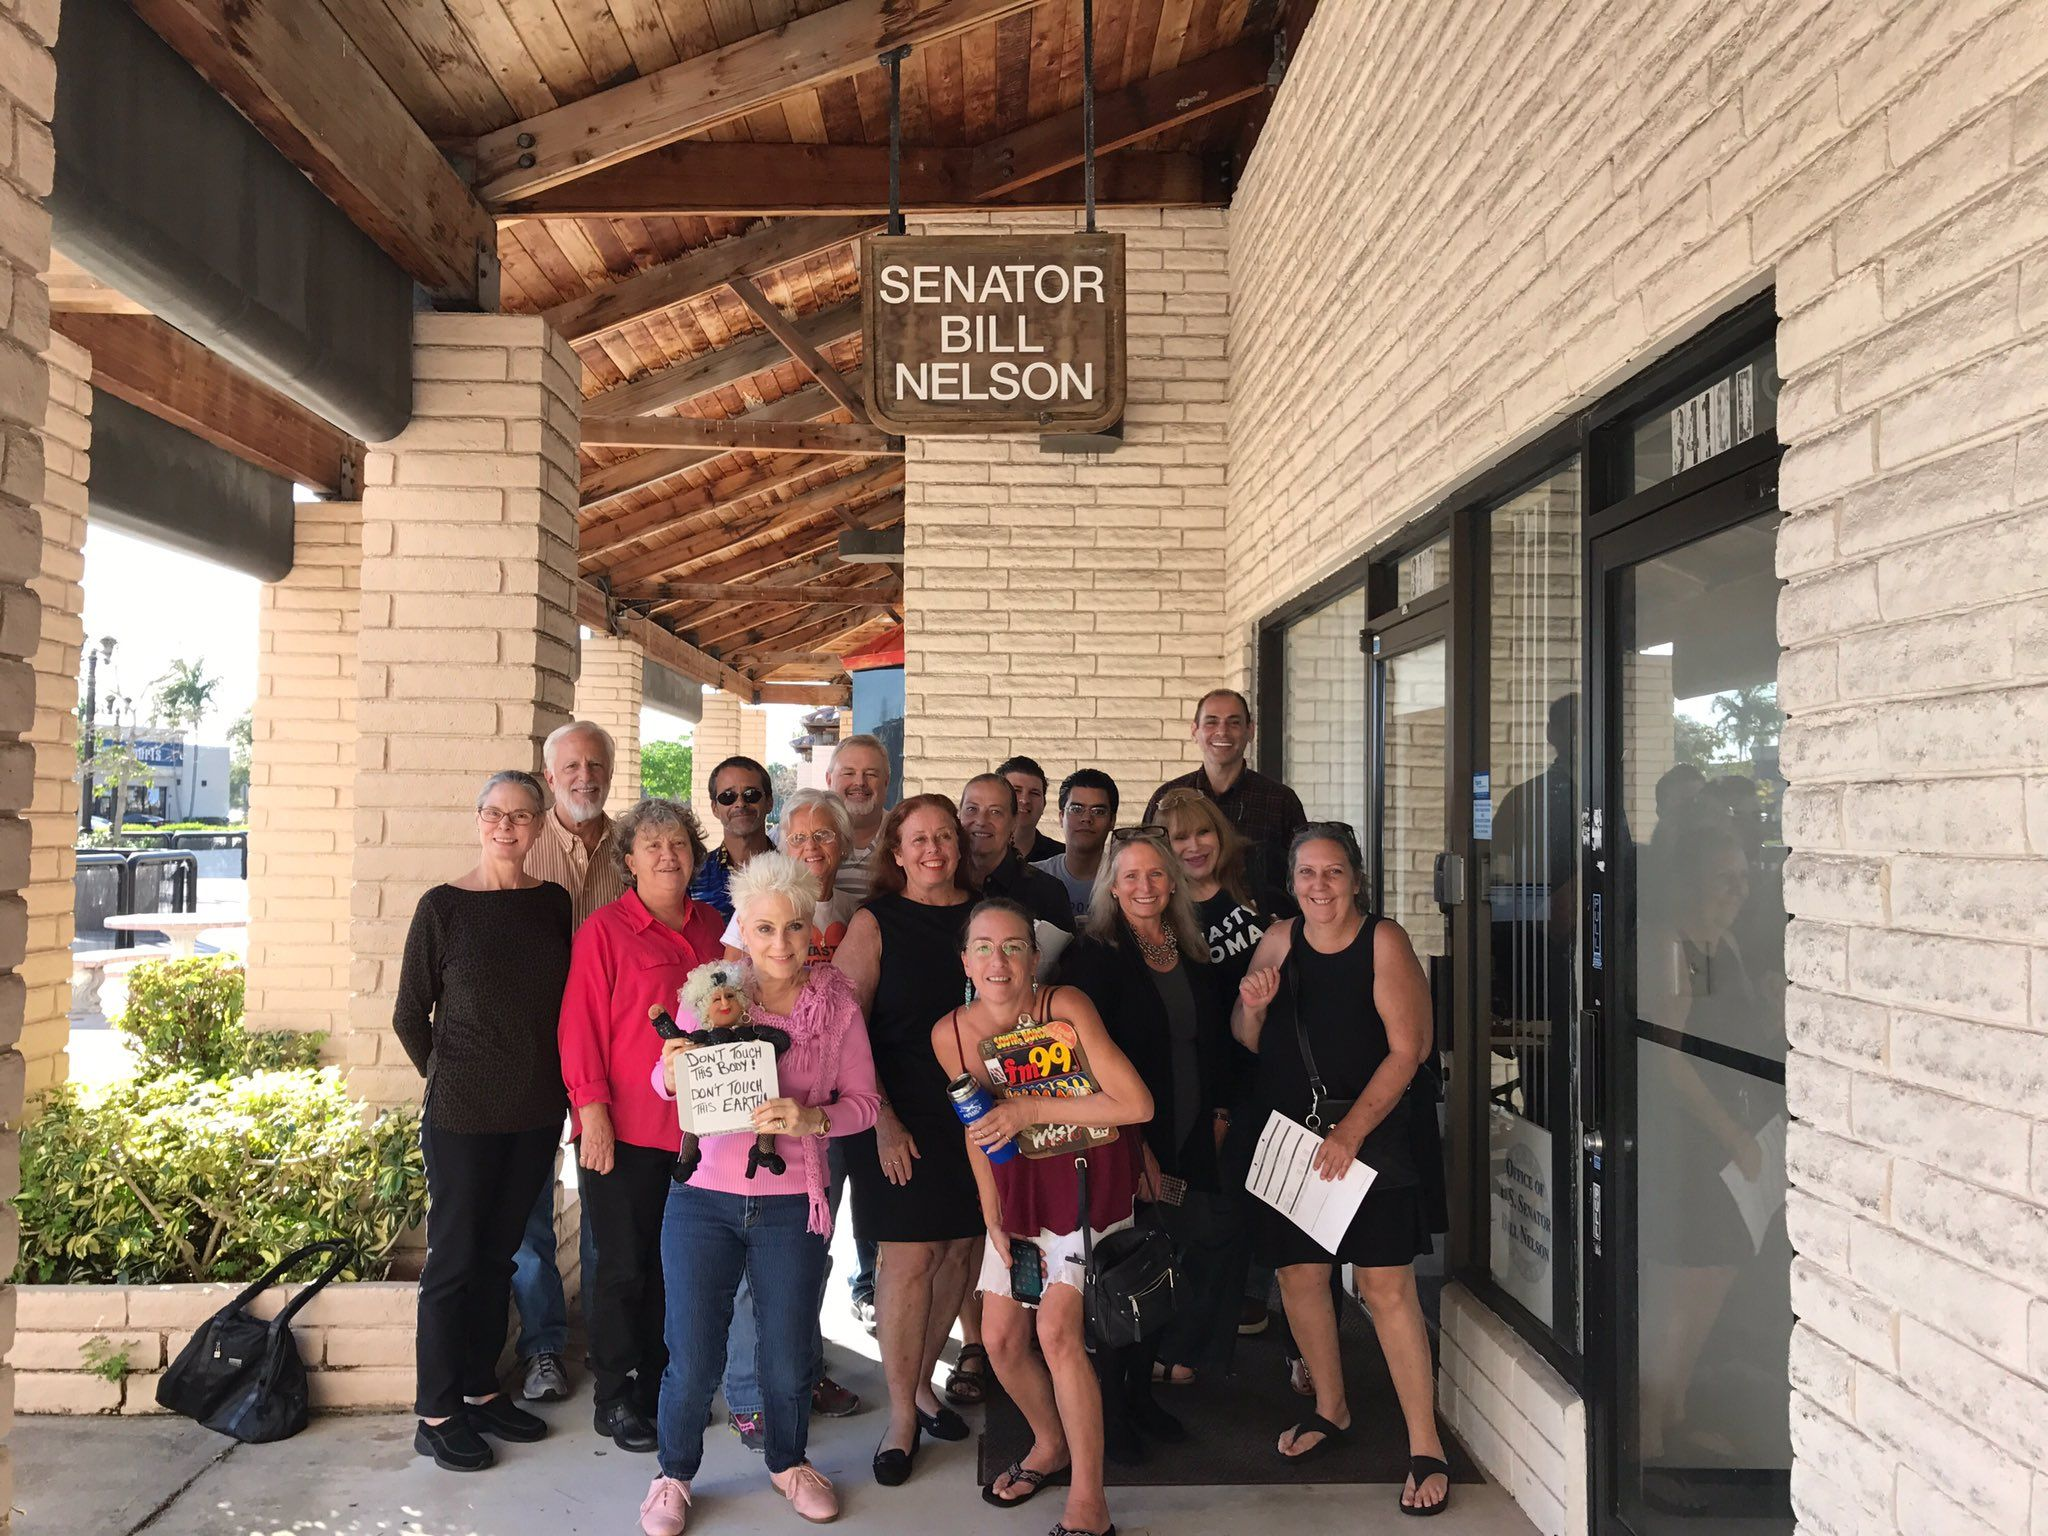 """Indivisible SFla on Twitter: """"@IndivisibleTeam @MoveOn #IndivisibleSFla met with Sen Bill Nelson Regional Director-thank you letter delivered for voting NO on 3 nominees! https://t.co/DGEq1Zpayg"""""""